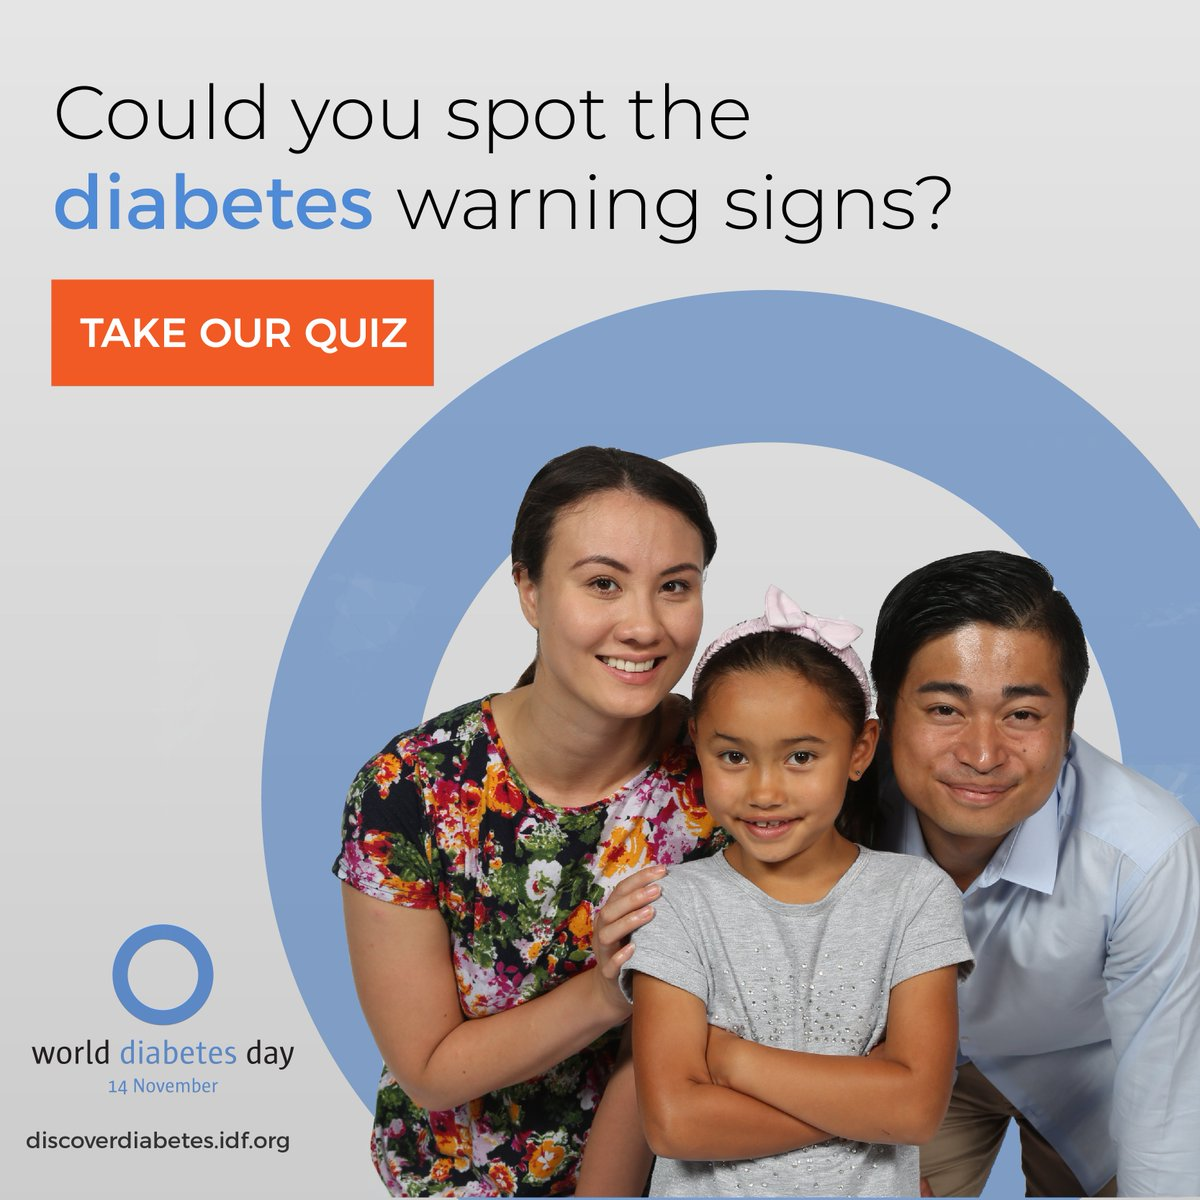 test Twitter Media - Today, on #WorldDiabetesDay get the whole family involved and test each other on the warning signs of #diabetes. You might surprise yourself with how much you know! After all, this #WDD2018 is all about family support #familyanddiabetes https://t.co/7g7vmYMG8n https://t.co/S5pVLl6yJ8